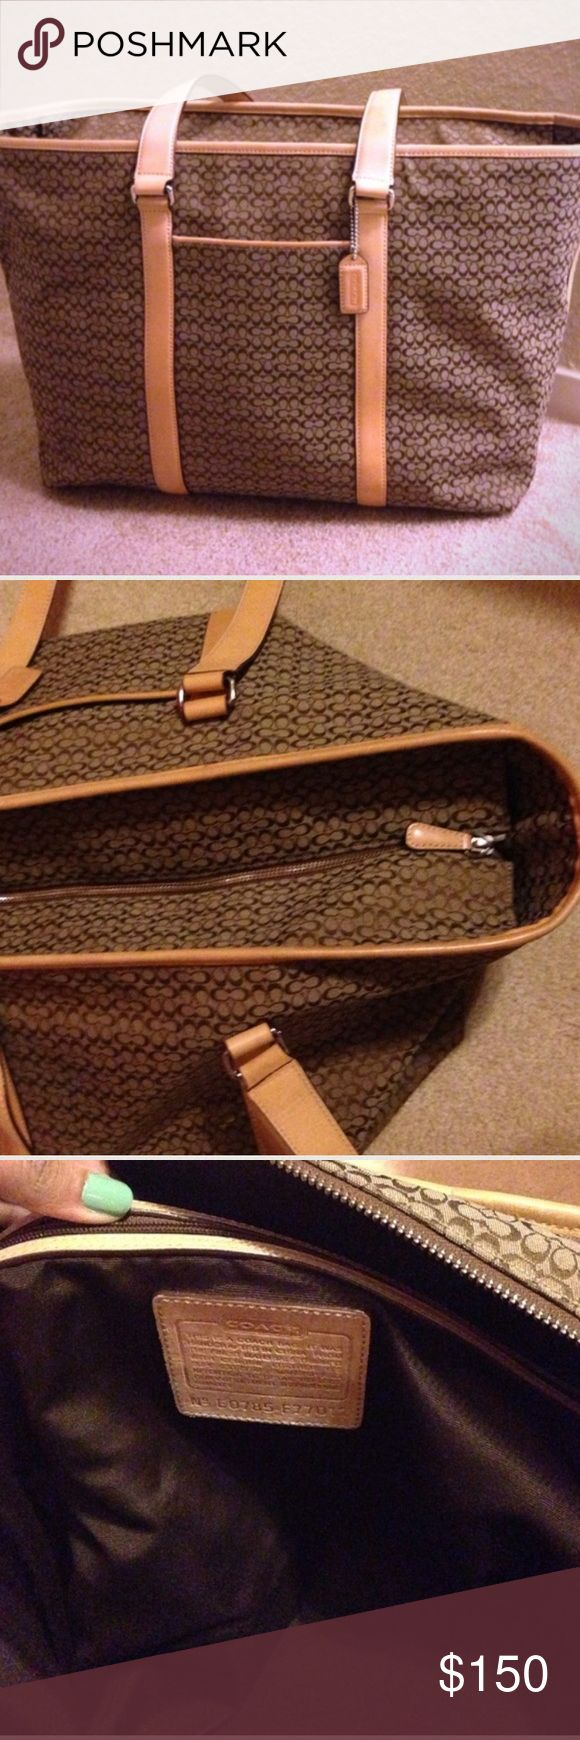 Giant coach travel or beach bag Very large bag, absolutely perfect for traveling or taking to the beach. A couple scuffs on the bottom but all pictures of flaws are included. Other than that, it's in great condition! Coach Bags Travel Bags